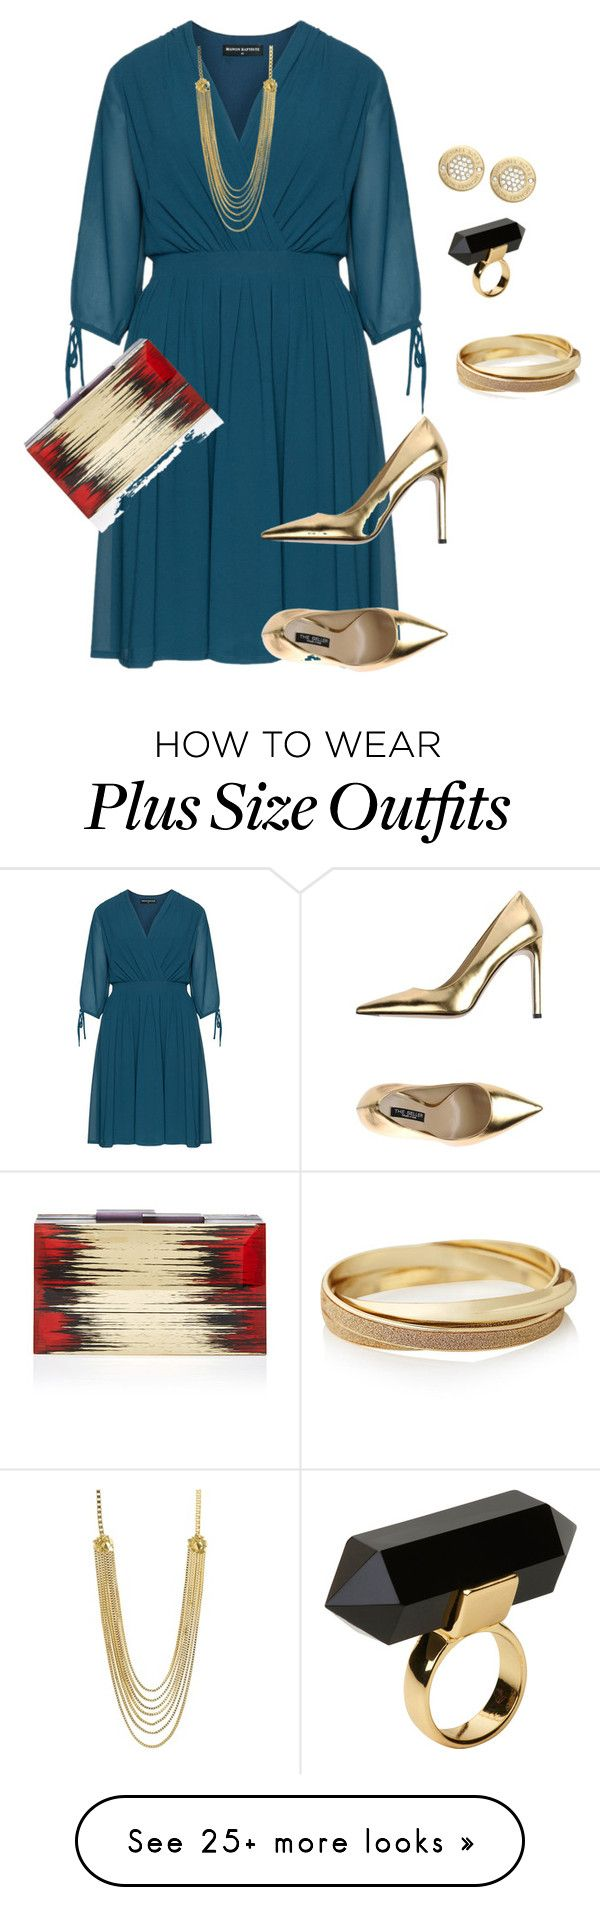 """plus size fancy wedding date look"" by kristie-payne on Polyvore featuring Manon Baptiste, The Seller, CC SKYE, Rauwolf, Monki, Michael Kors and The Limited"